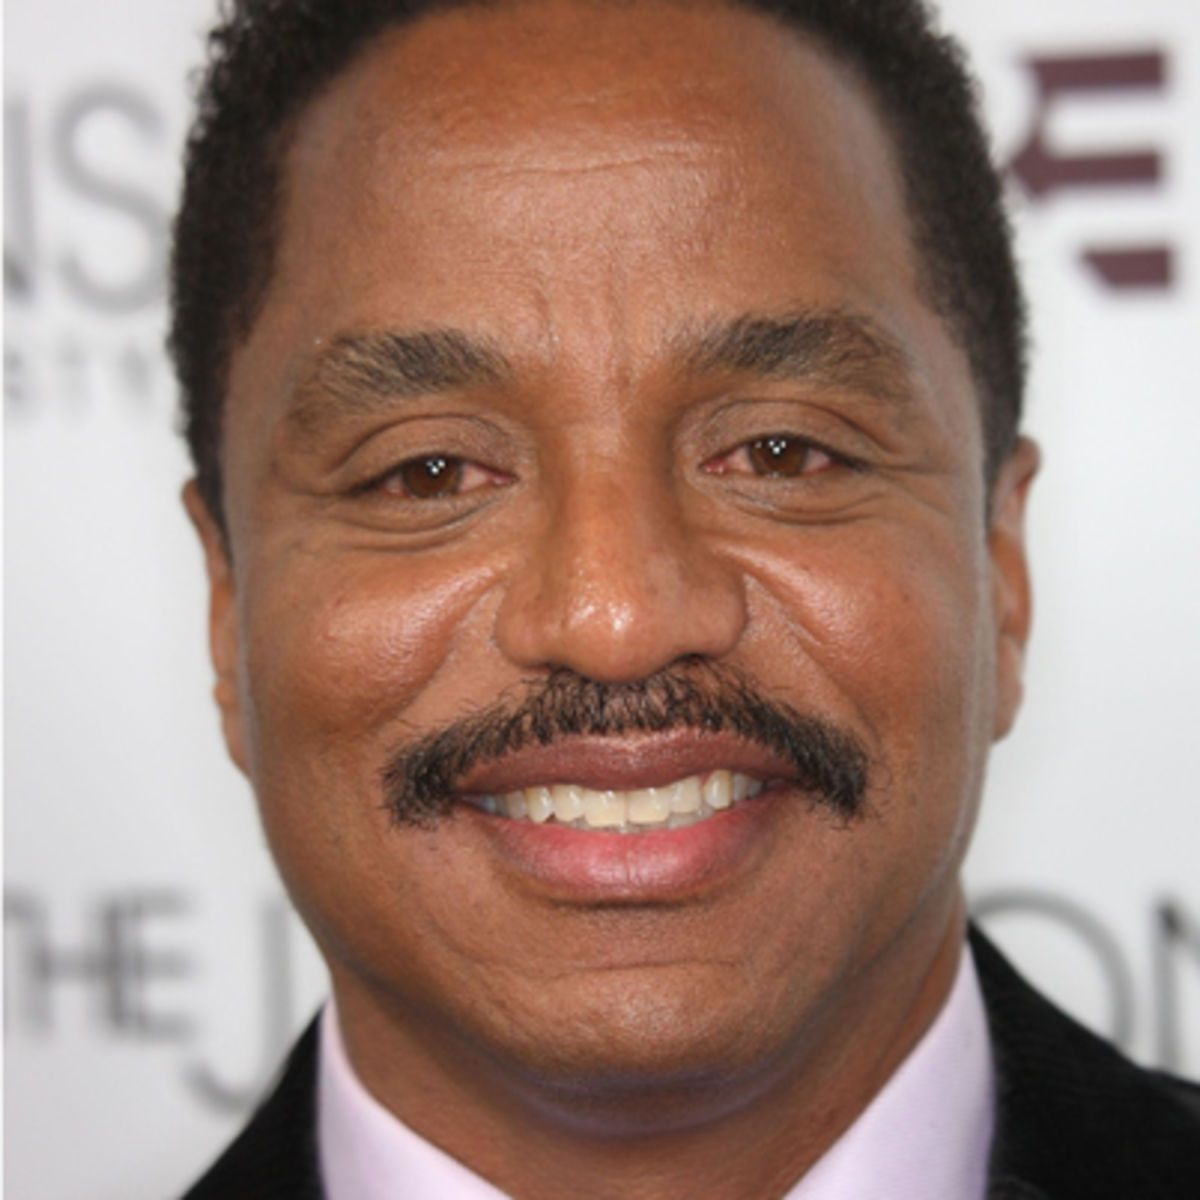 Marlon Jackson  - 2019 Dark brown hair & chic hair style.